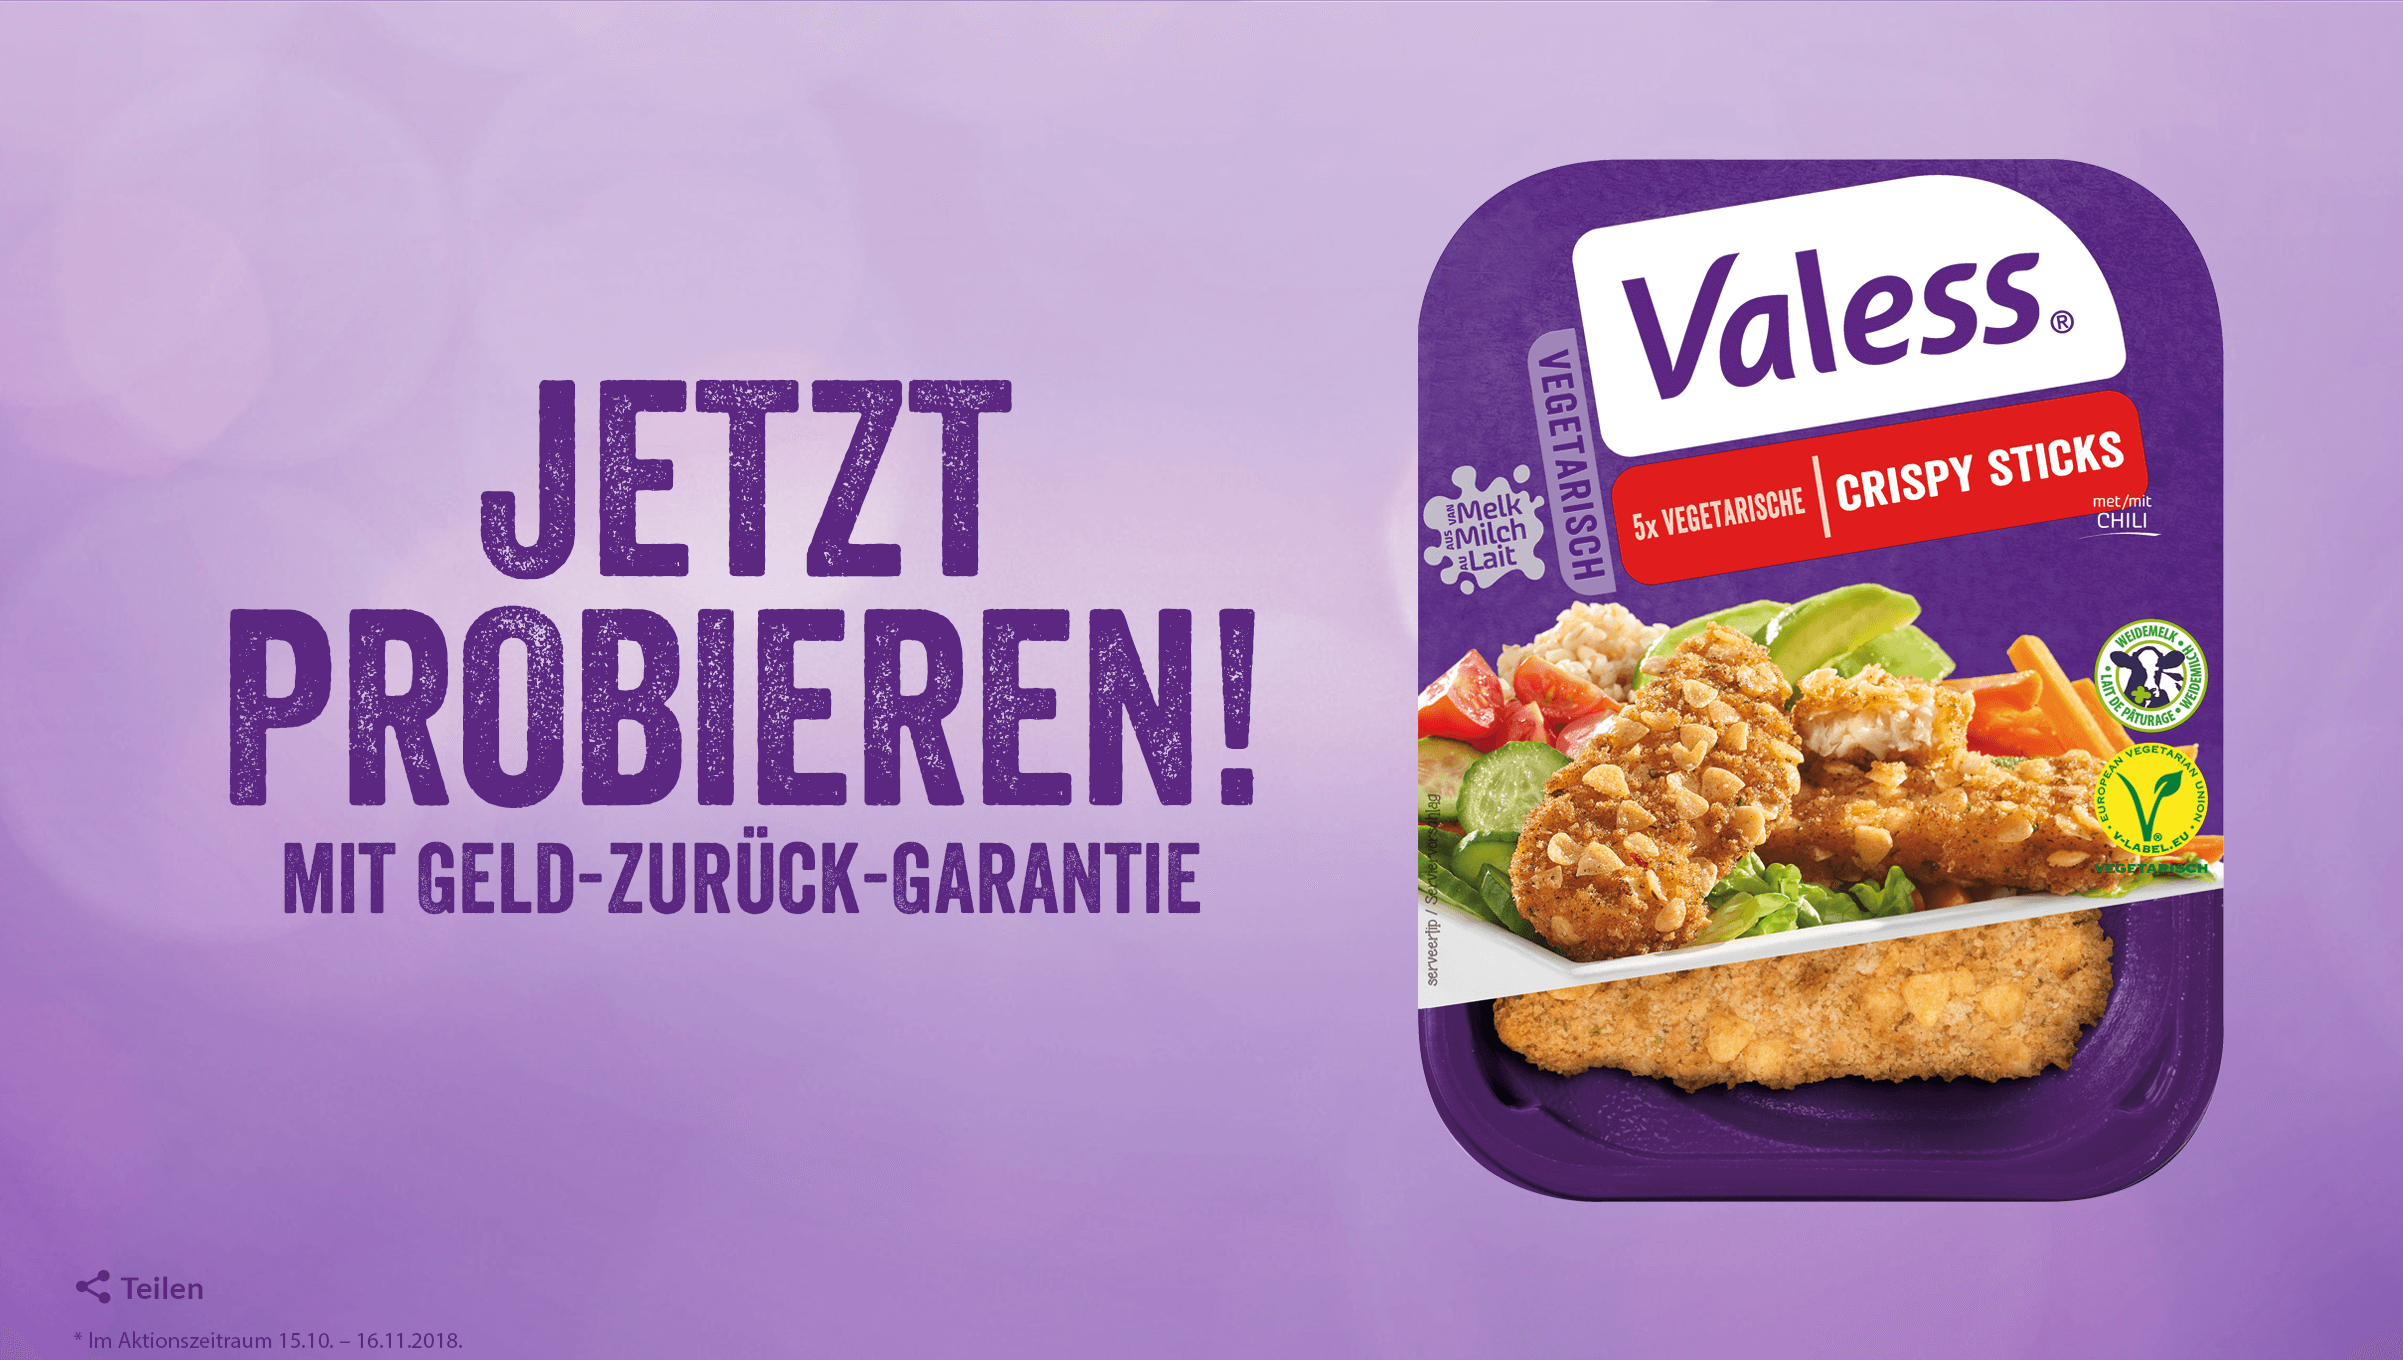 http://ff.couponplatz.de/promotions/valess_crispy_sticks/img/Valess_Titelbild_3.png